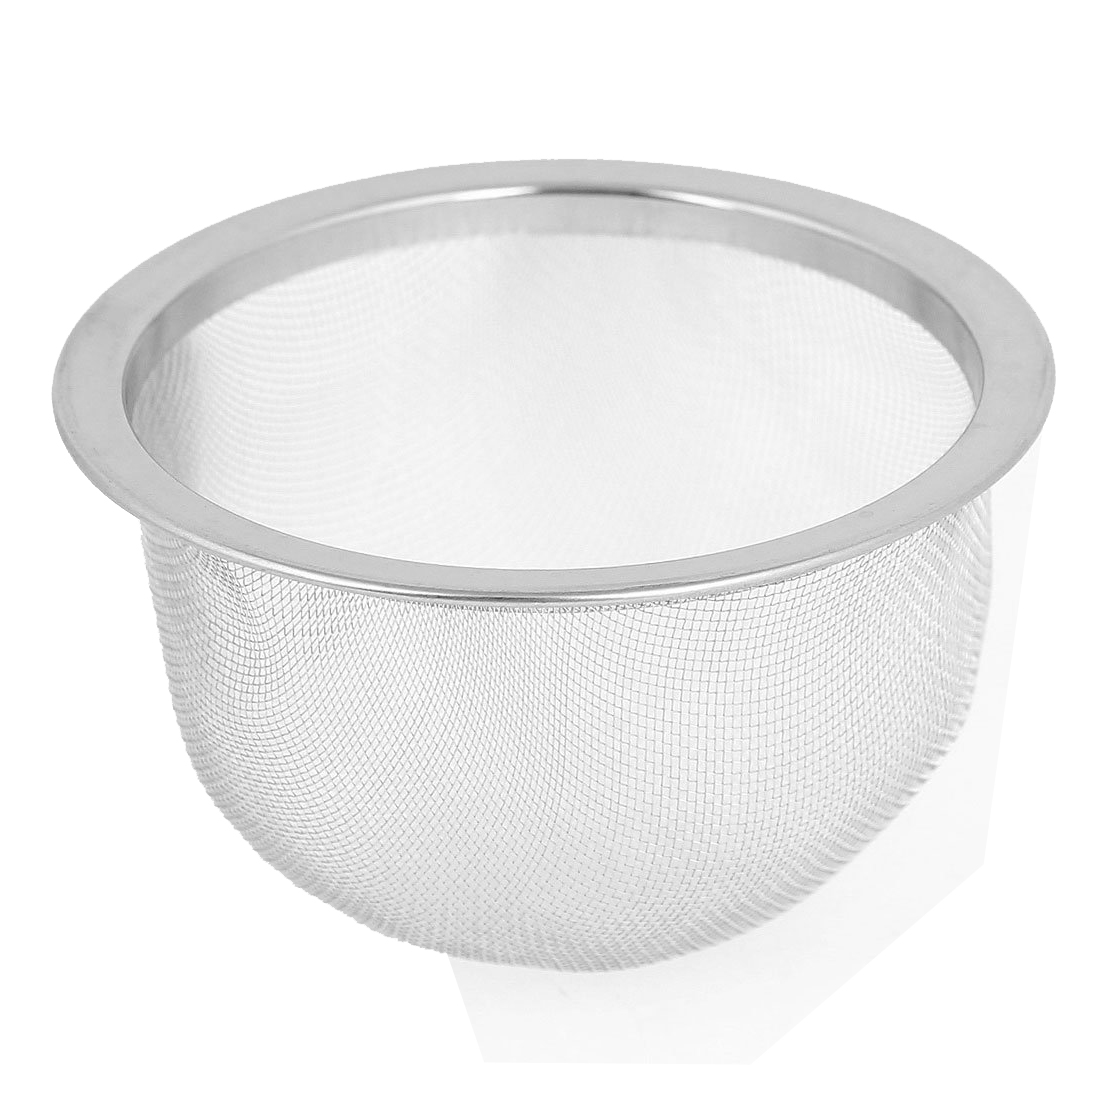 76mm Silver Tone Stainless Steel Wire Mesh Tea Leaves Spice Strainer Basket